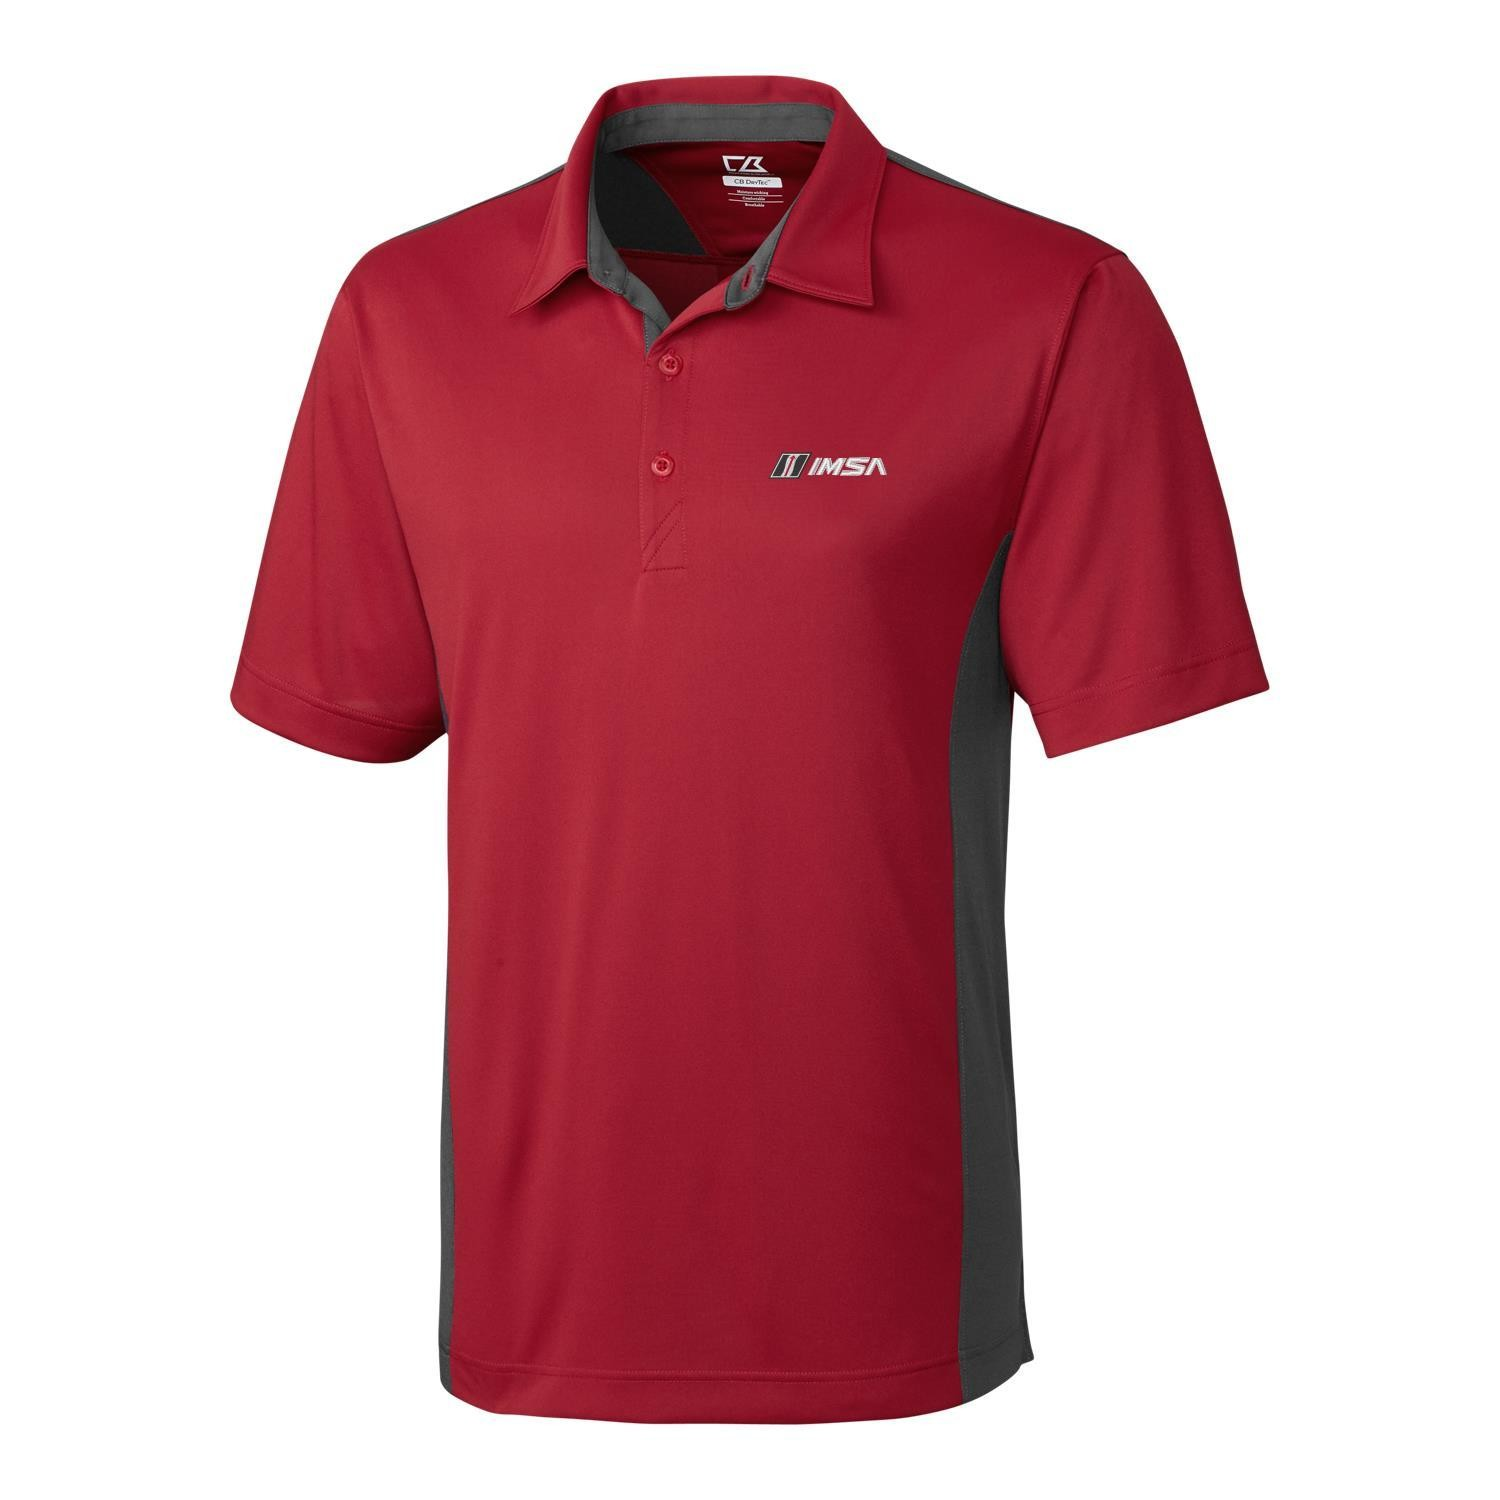 IMSA CB DryTec Willows Colorblock Polo Cardinal Red/Onyx